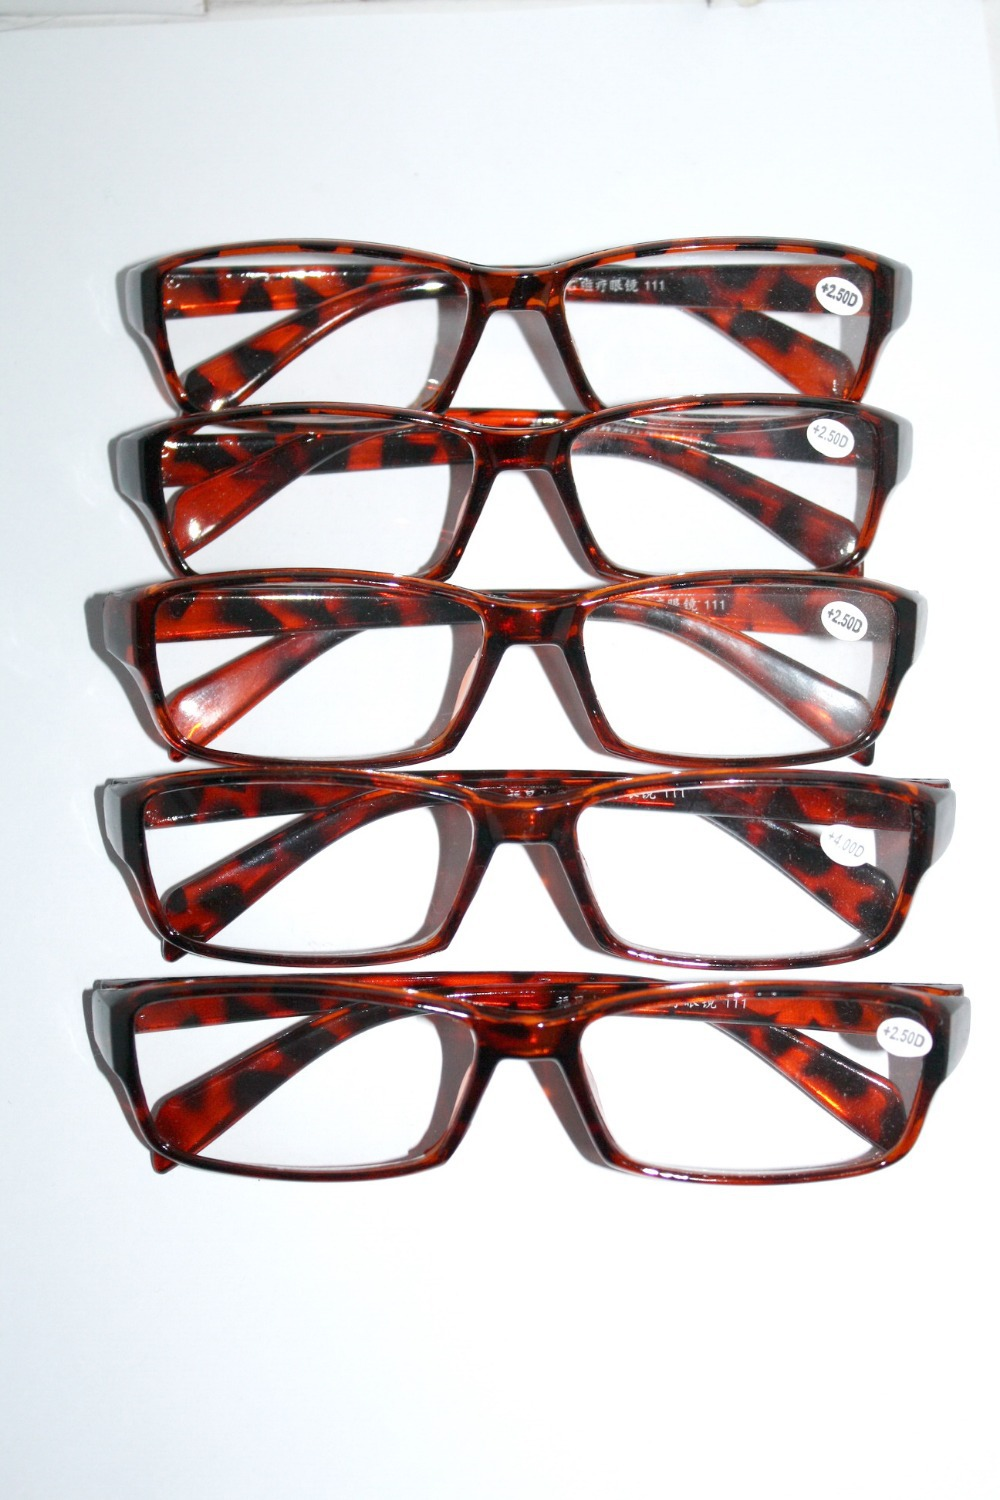 00810ebc6b25  FIVE PAIRS (mix strength ok) WHOLESALE  RECTANGULAR classic JOBLOT  discount reading glasses +1 +1.5 +2 +2.5 +3 +3.5 +4 033-in Reading Glasses  from Apparel ...